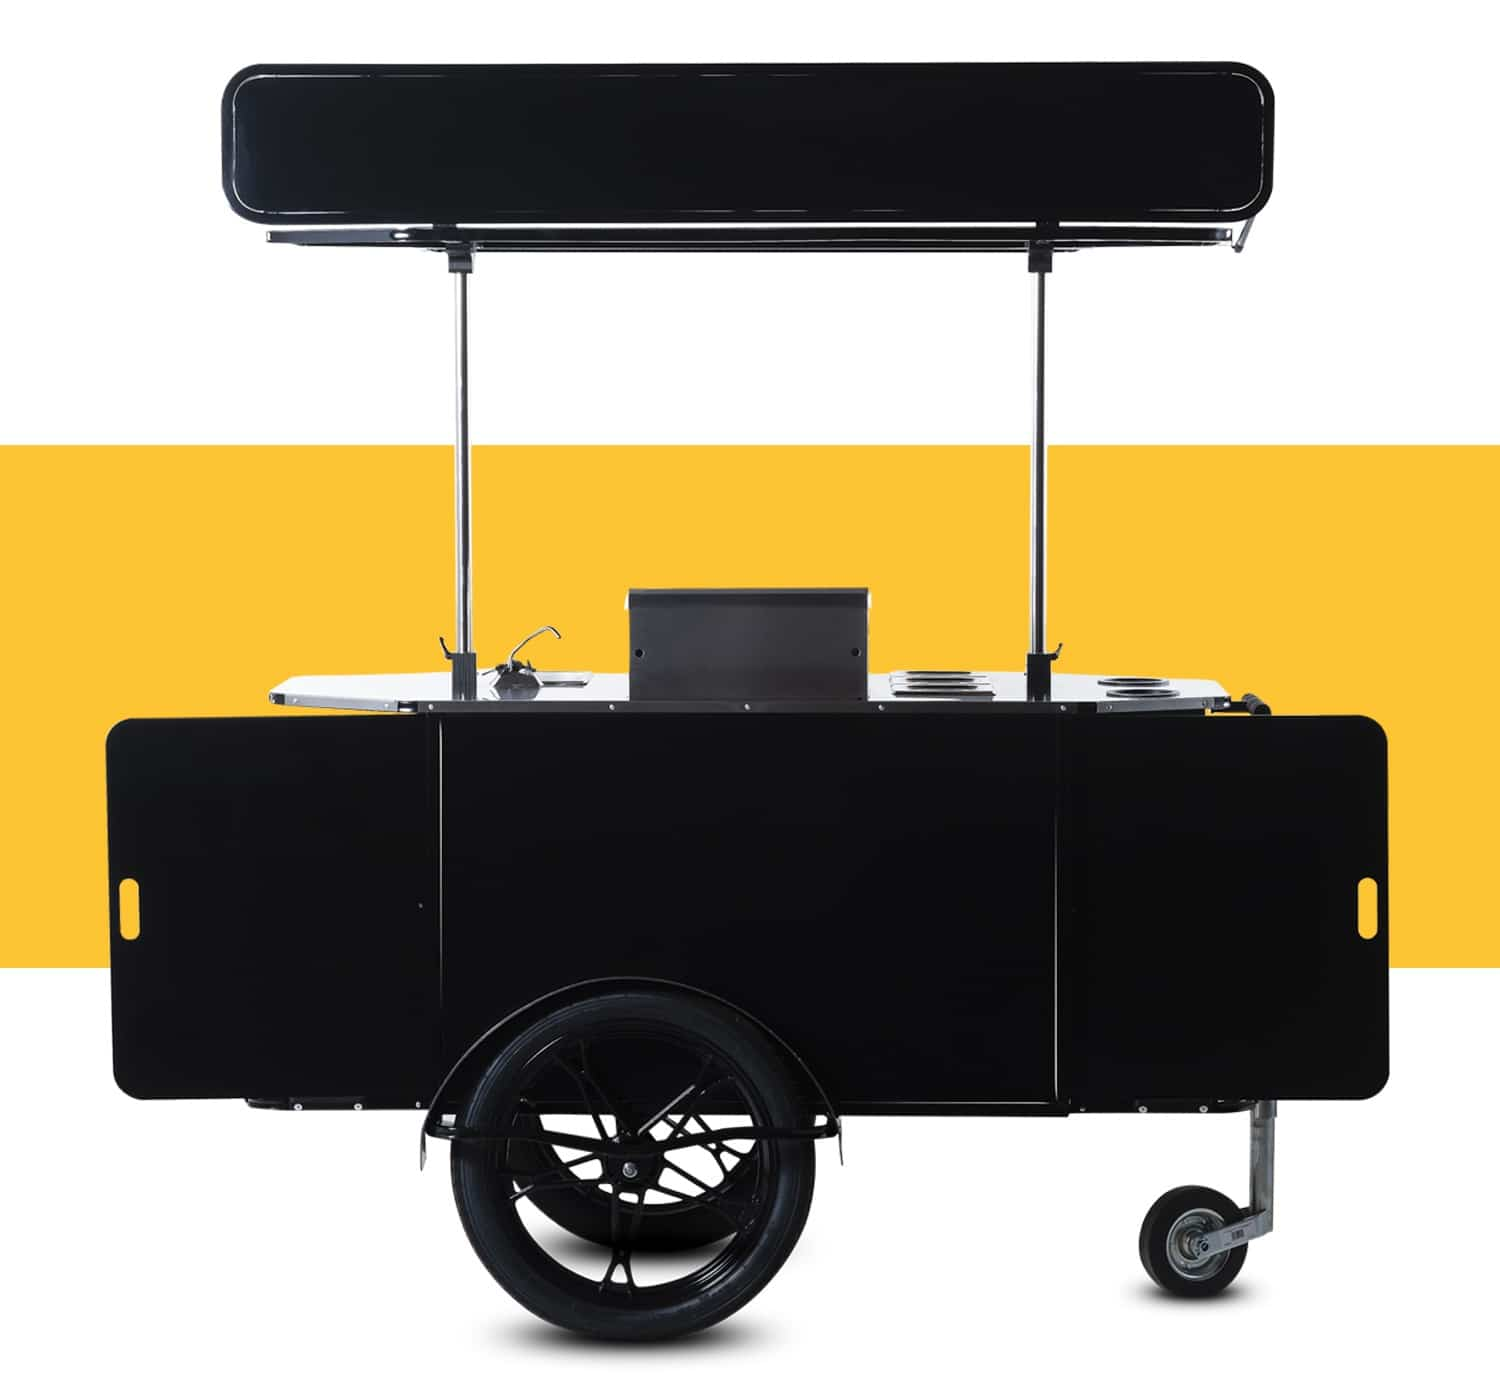 Burger cart for sale by Bizz On Wheels